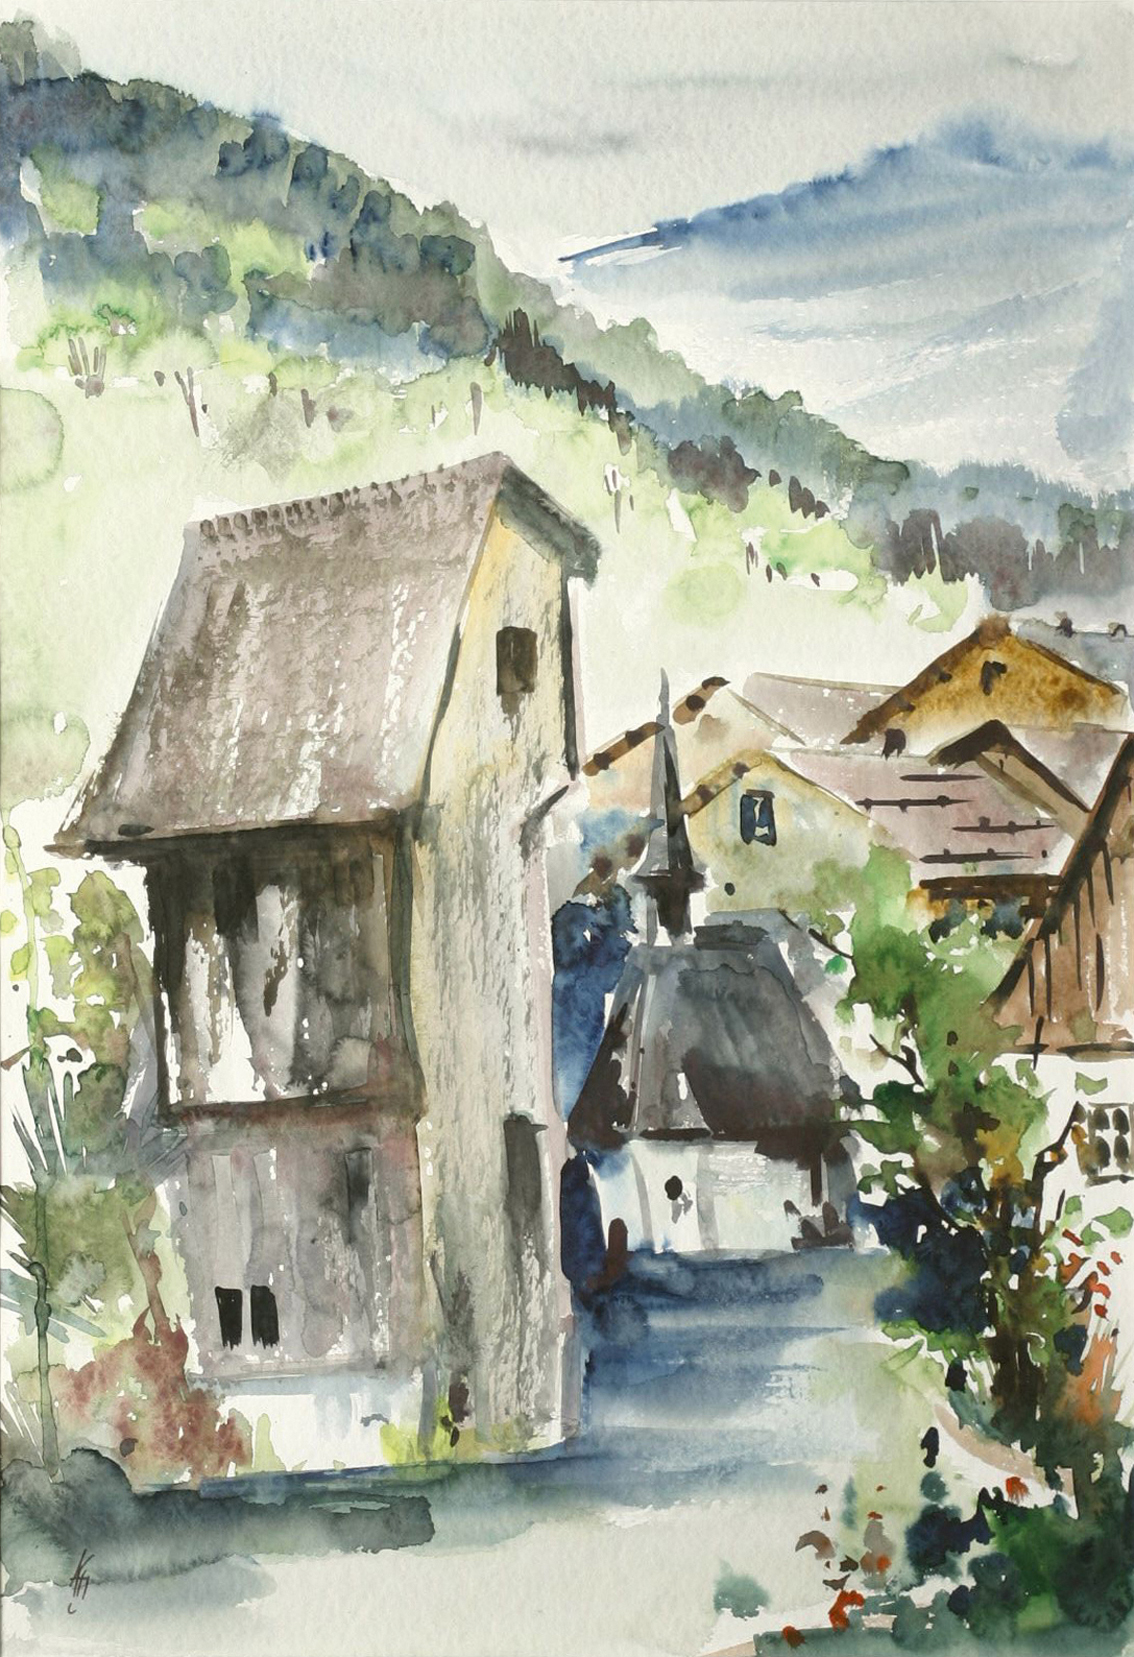 View of a village in the mountains